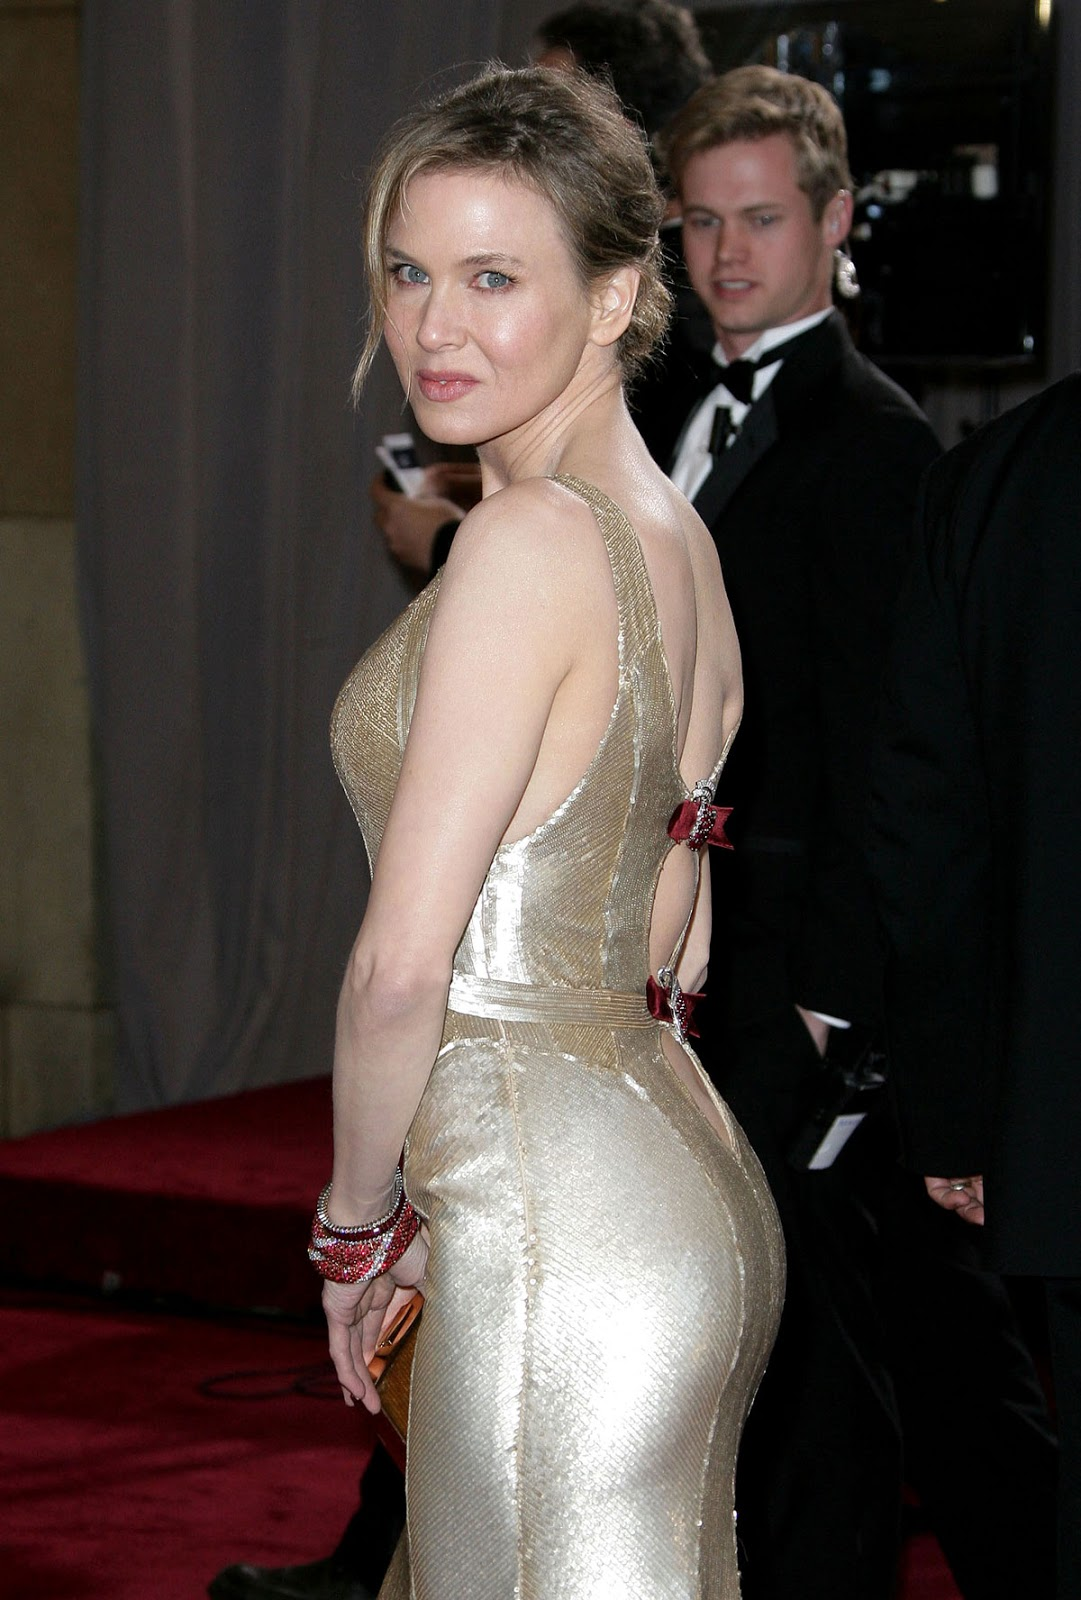 http://1.bp.blogspot.com/-KeaJ4cf-7Bo/USuGn6h1W0I/AAAAAAAAEGg/stNU7V0rXfg/s1600/RENEE-ZELLWEGER-at-85th-Annual-Academy-Awards-at-the-Dolby-Theatre-in-Hollywood-5.jpg